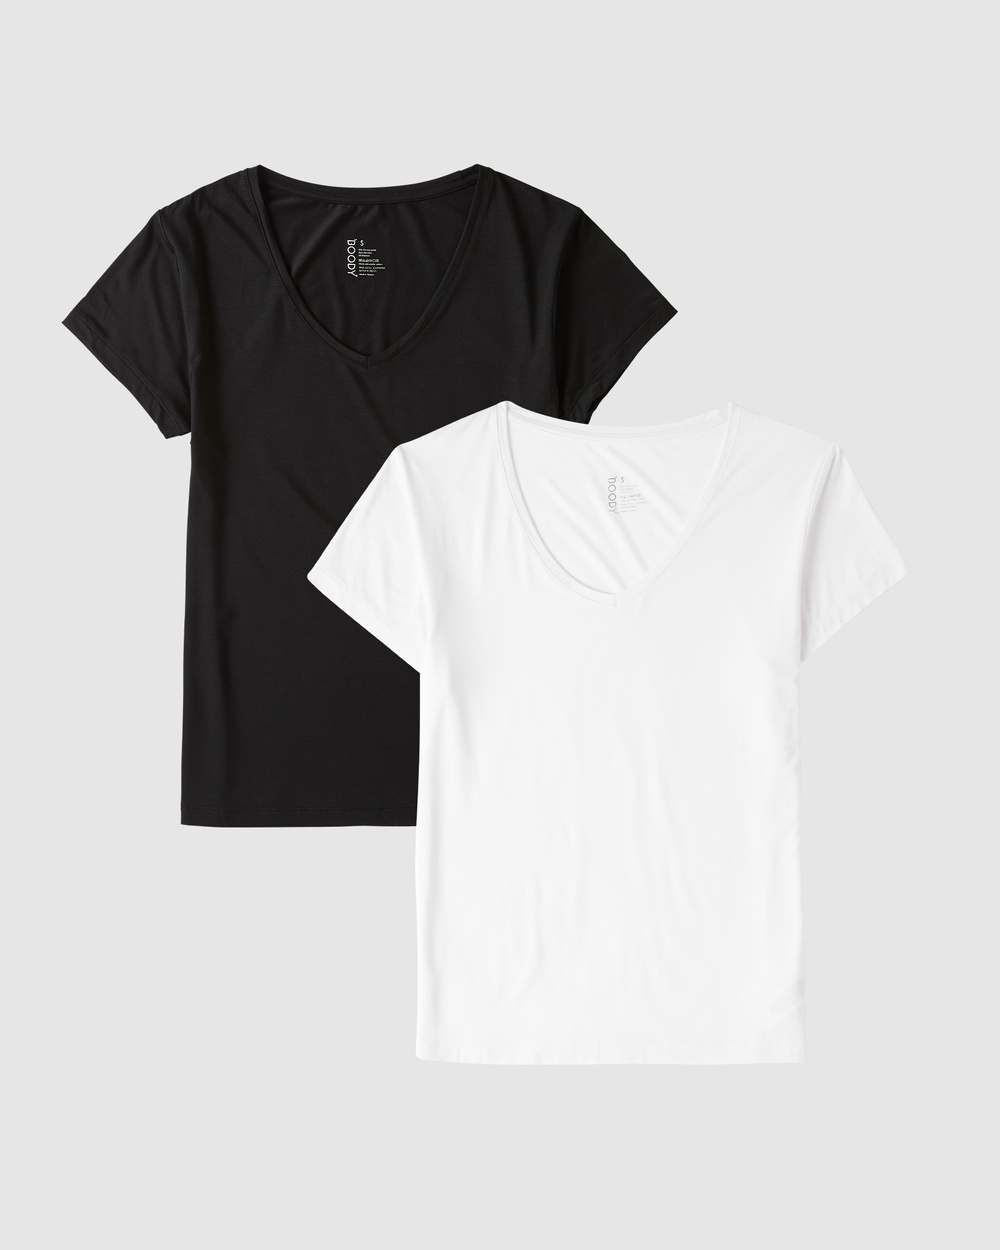 Boody Organic Bamboo Eco Wear - 2 Pack V Neck T Shirt - Short Sleeve T-Shirts (Black & White) 2 Pack V-Neck T-Shirt